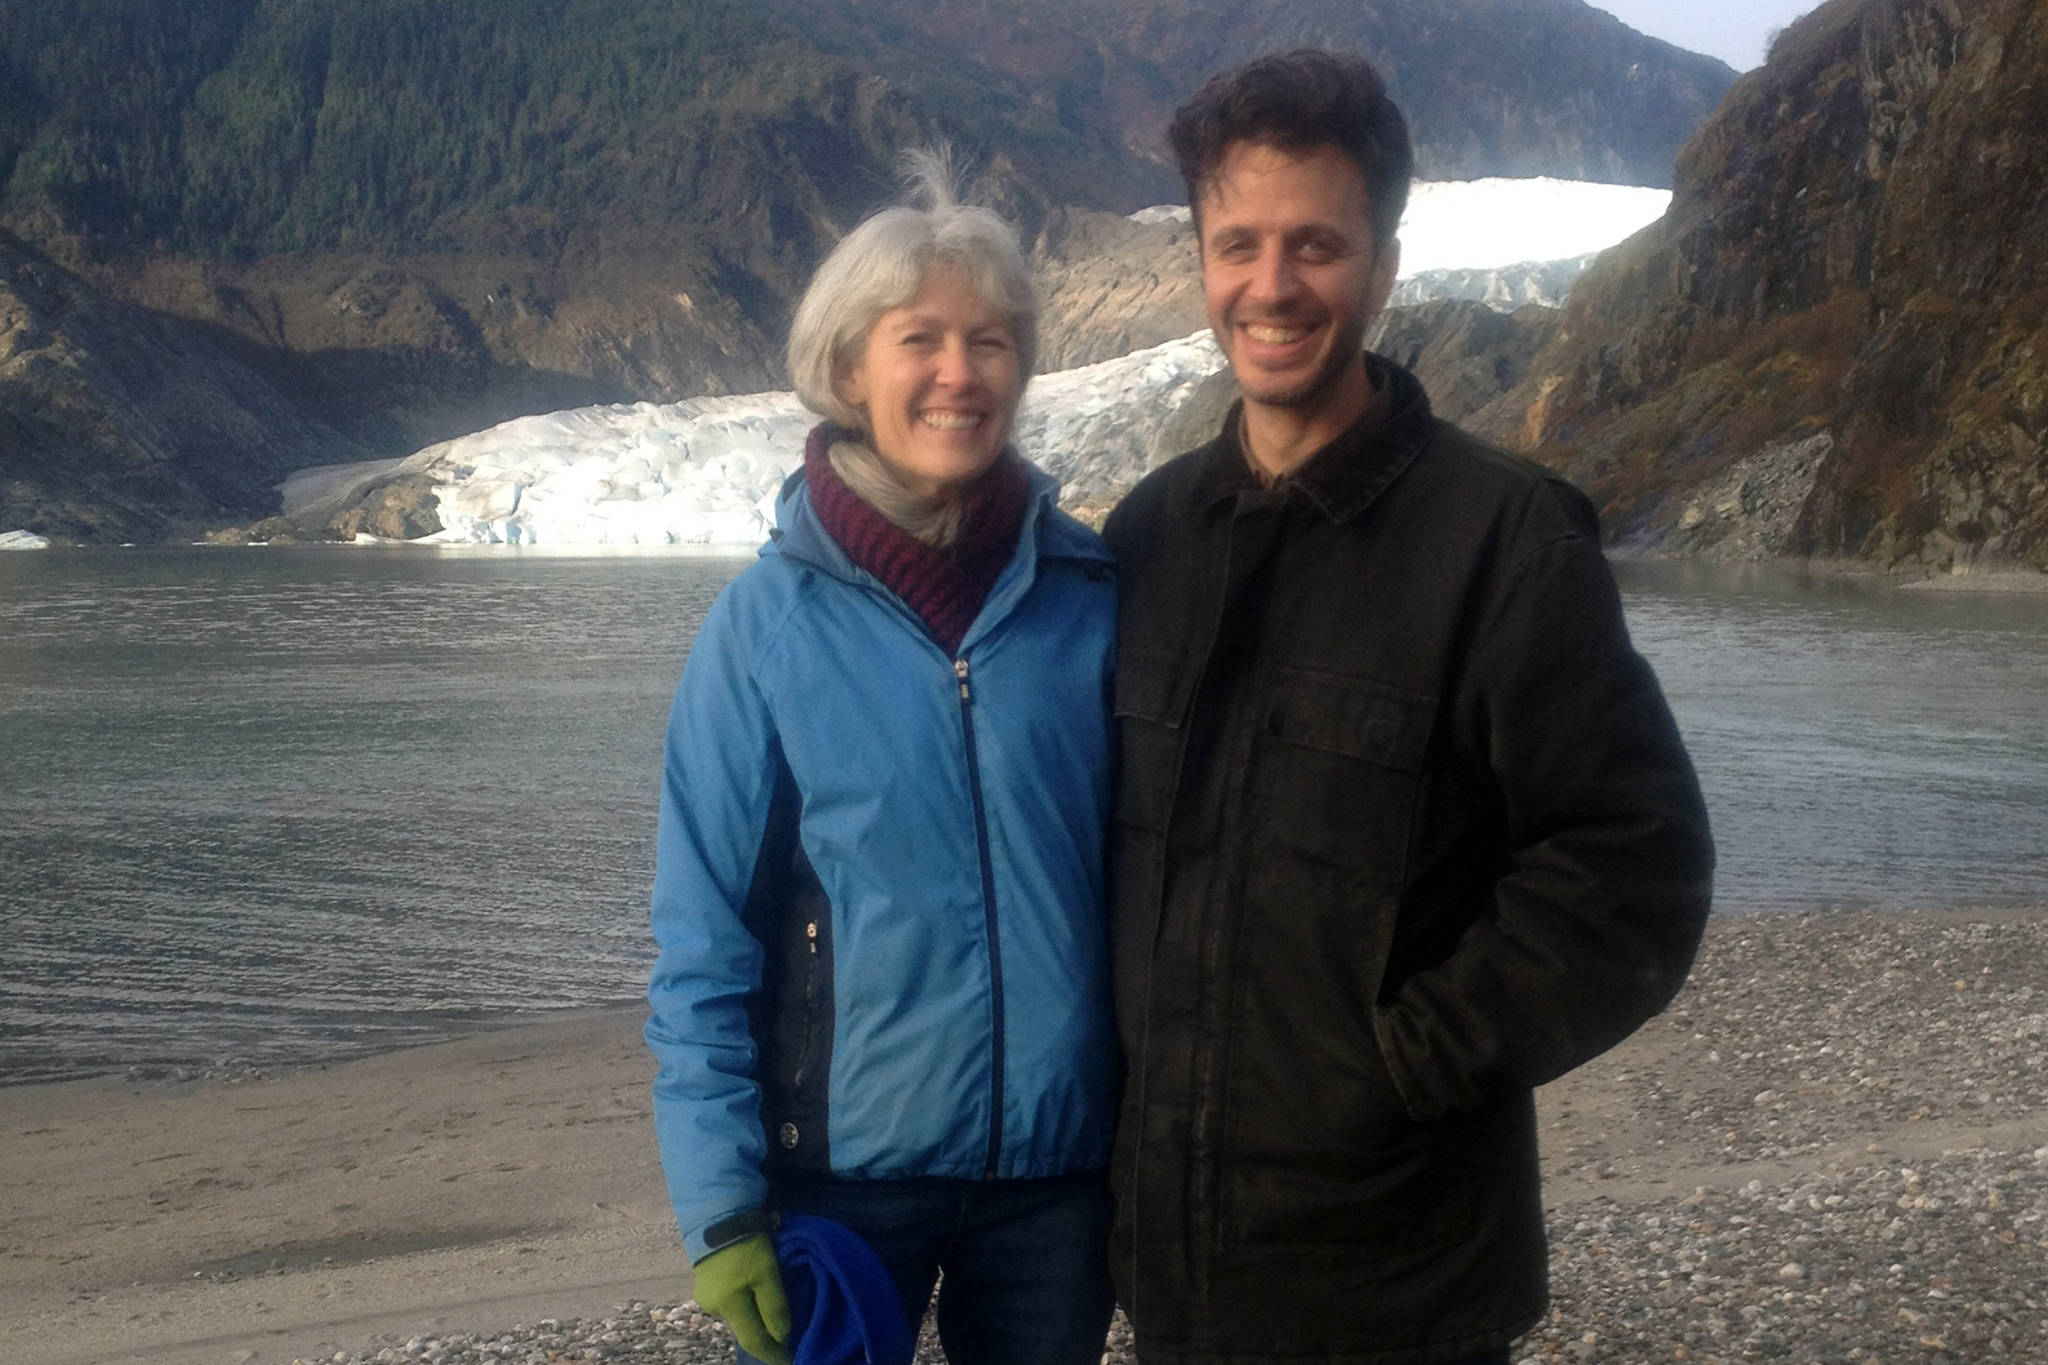 Nonviolent Communivation instructors Jared Finkelstein and Kathleen Macferran are coming back to Juneau for a weekend NVC workshop. (Courtesy Photo | Darcy Lockhart)